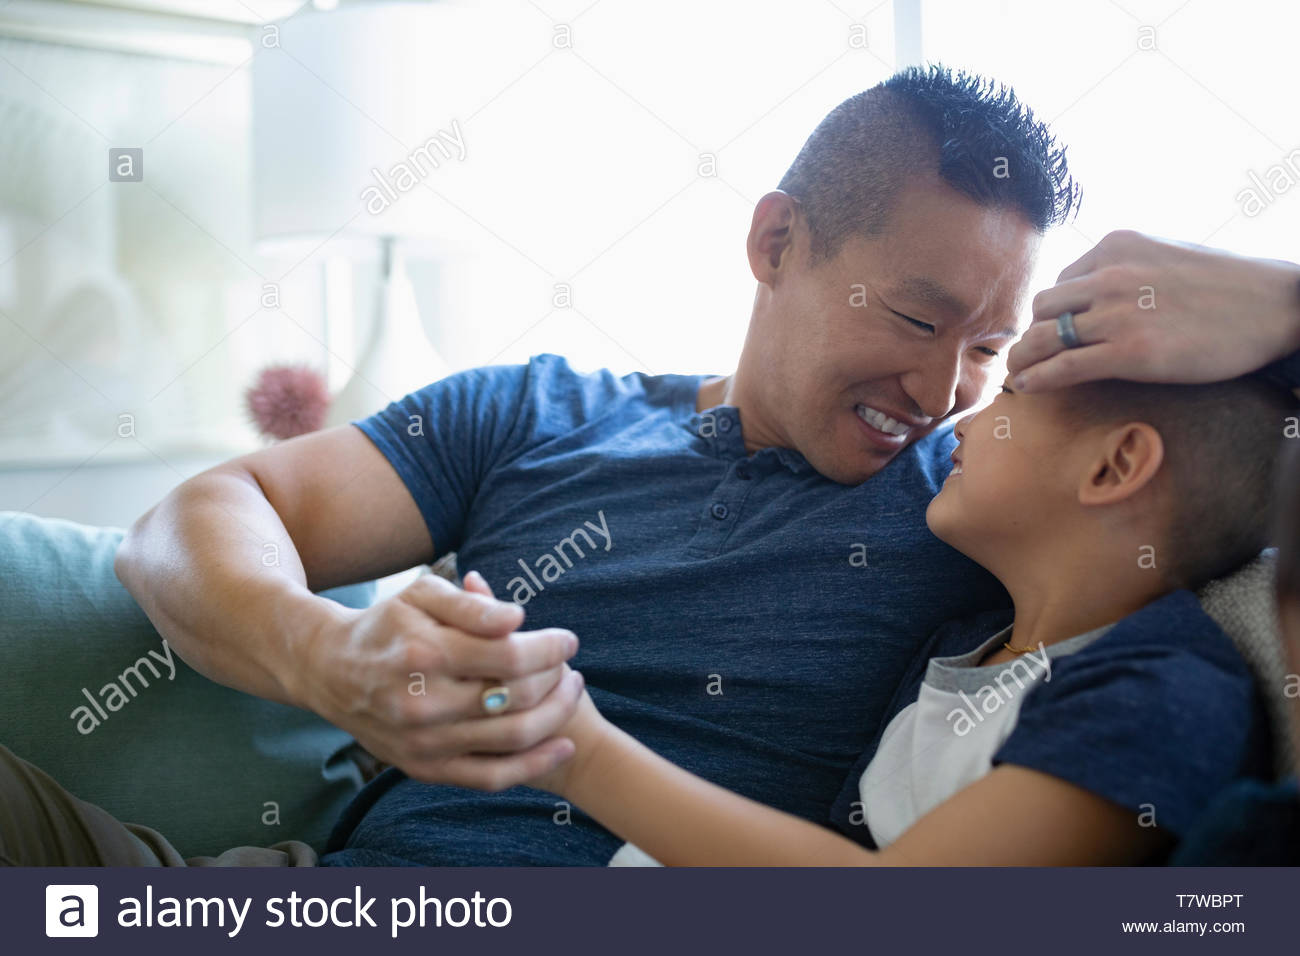 Affectionate, happy father and son - Stock Image